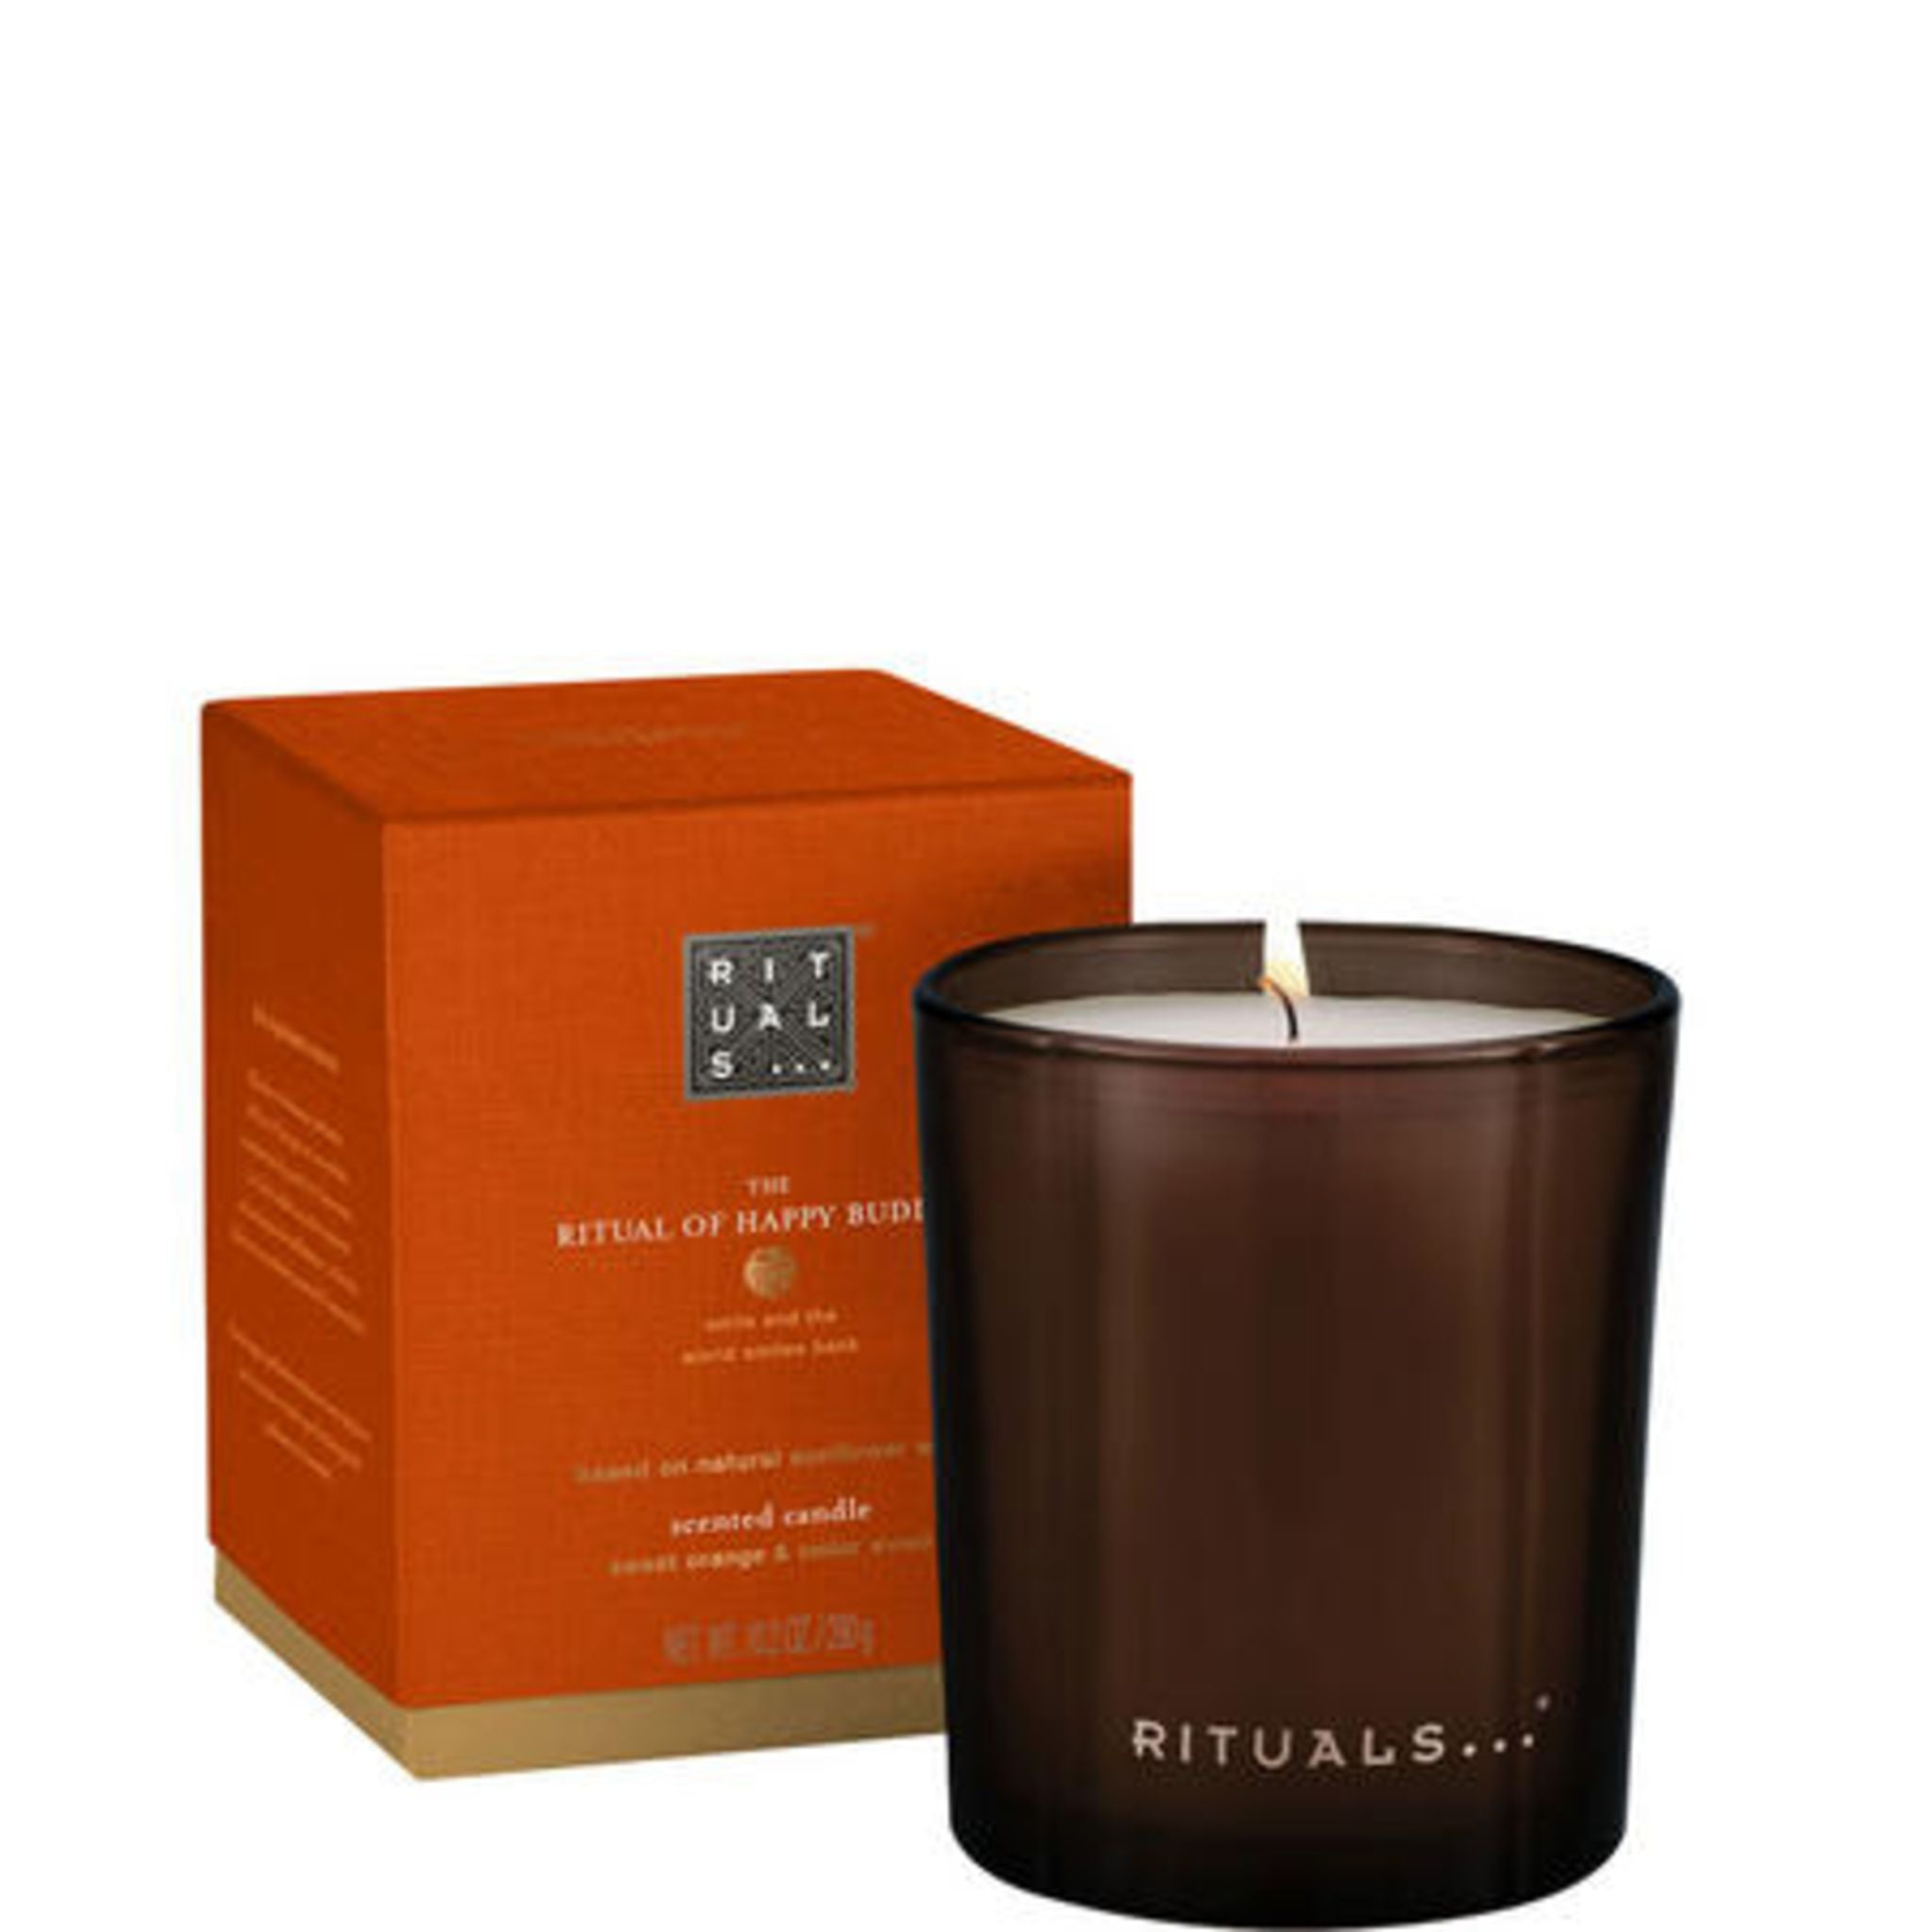 RITUALS: Happy Budda Scented Candle